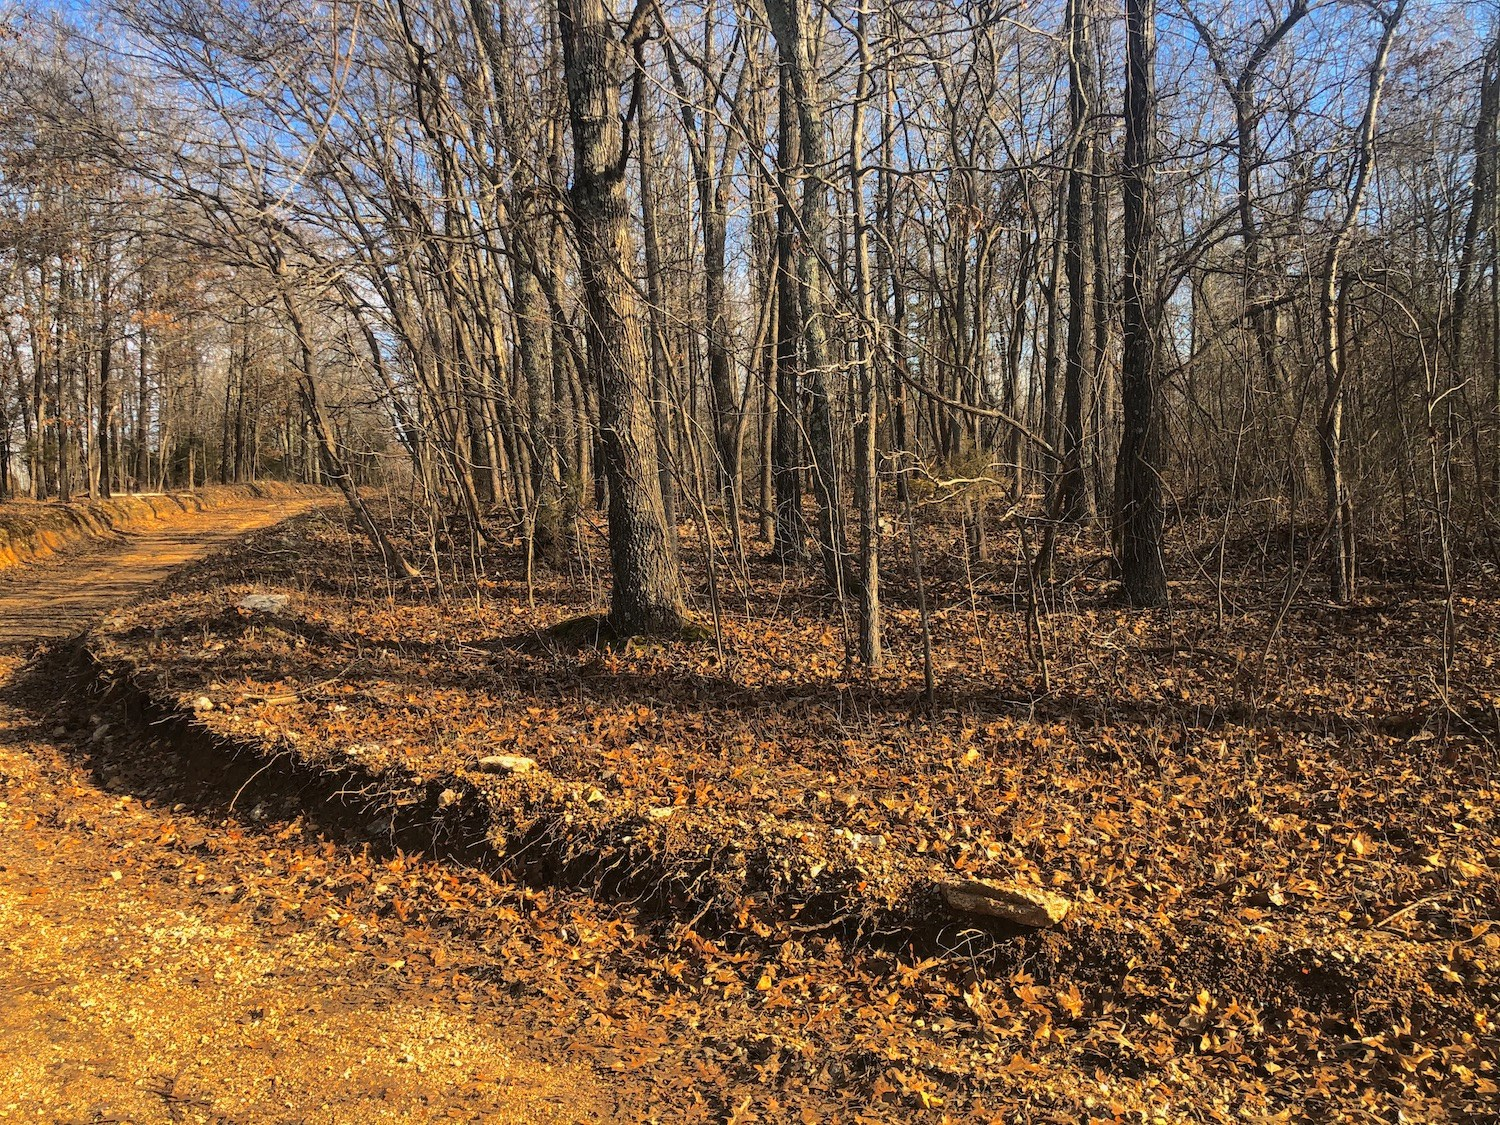 Land for Sale in the Missouri Ozarks